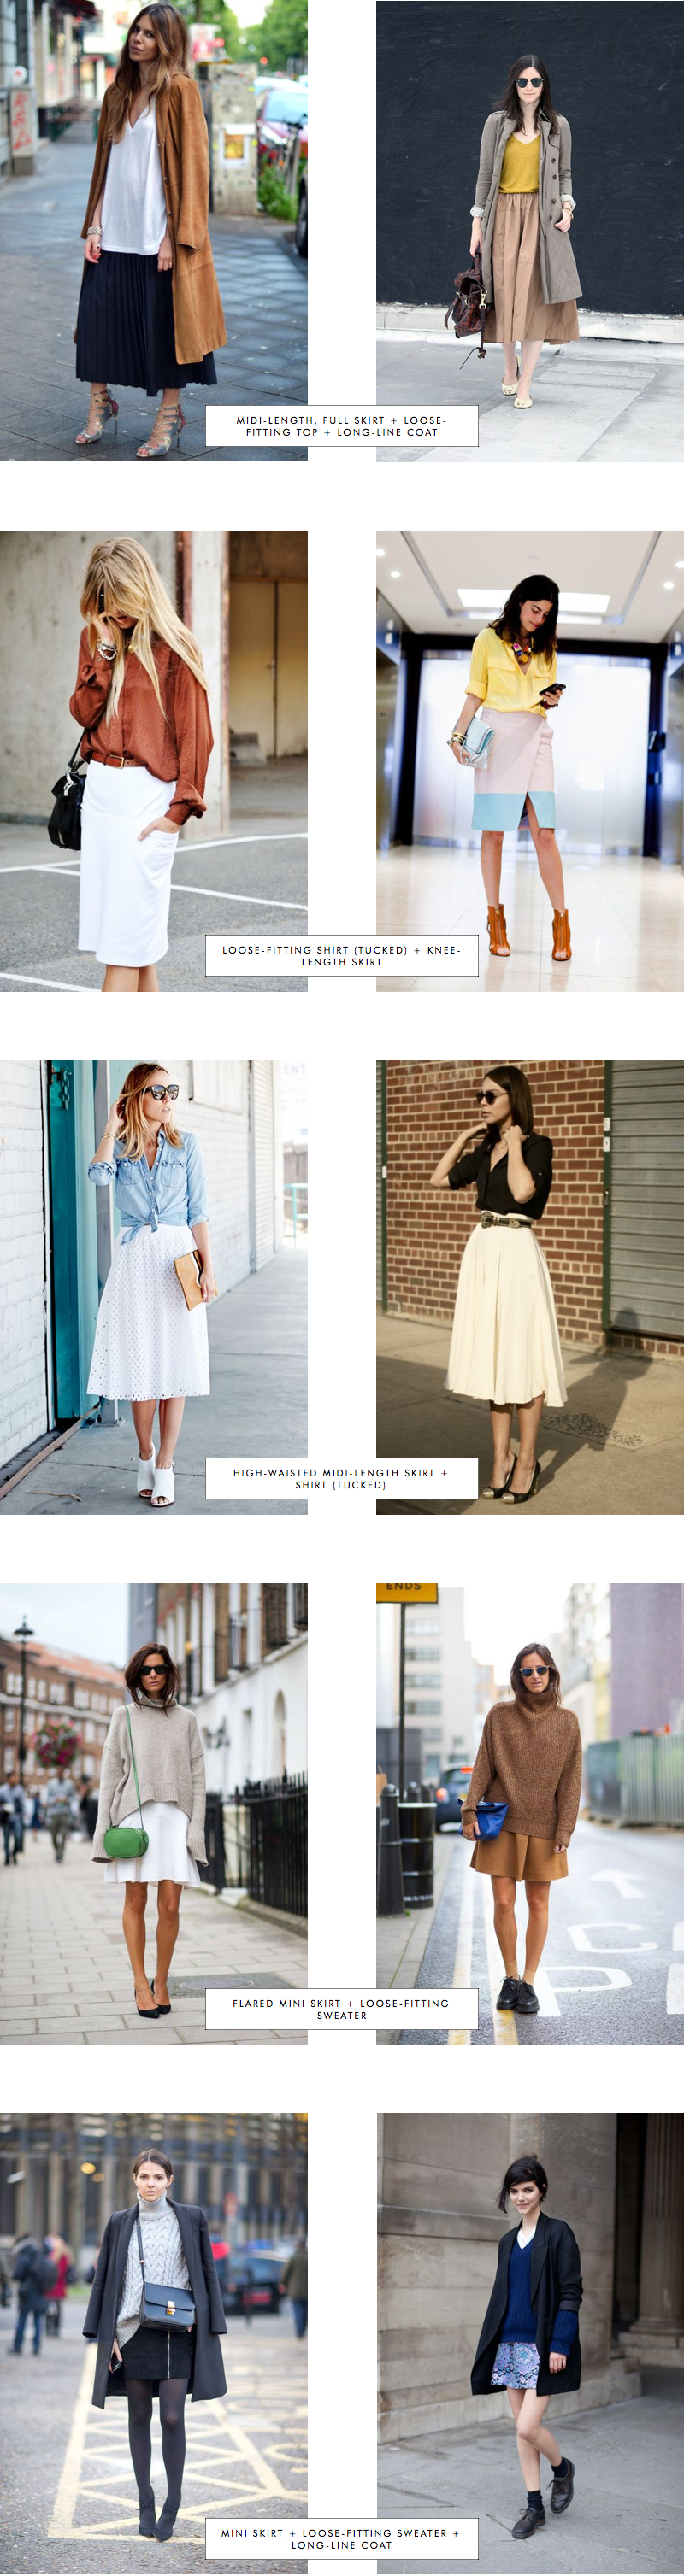 Proportions Catalogue Spring Edition: Skirts Part 2